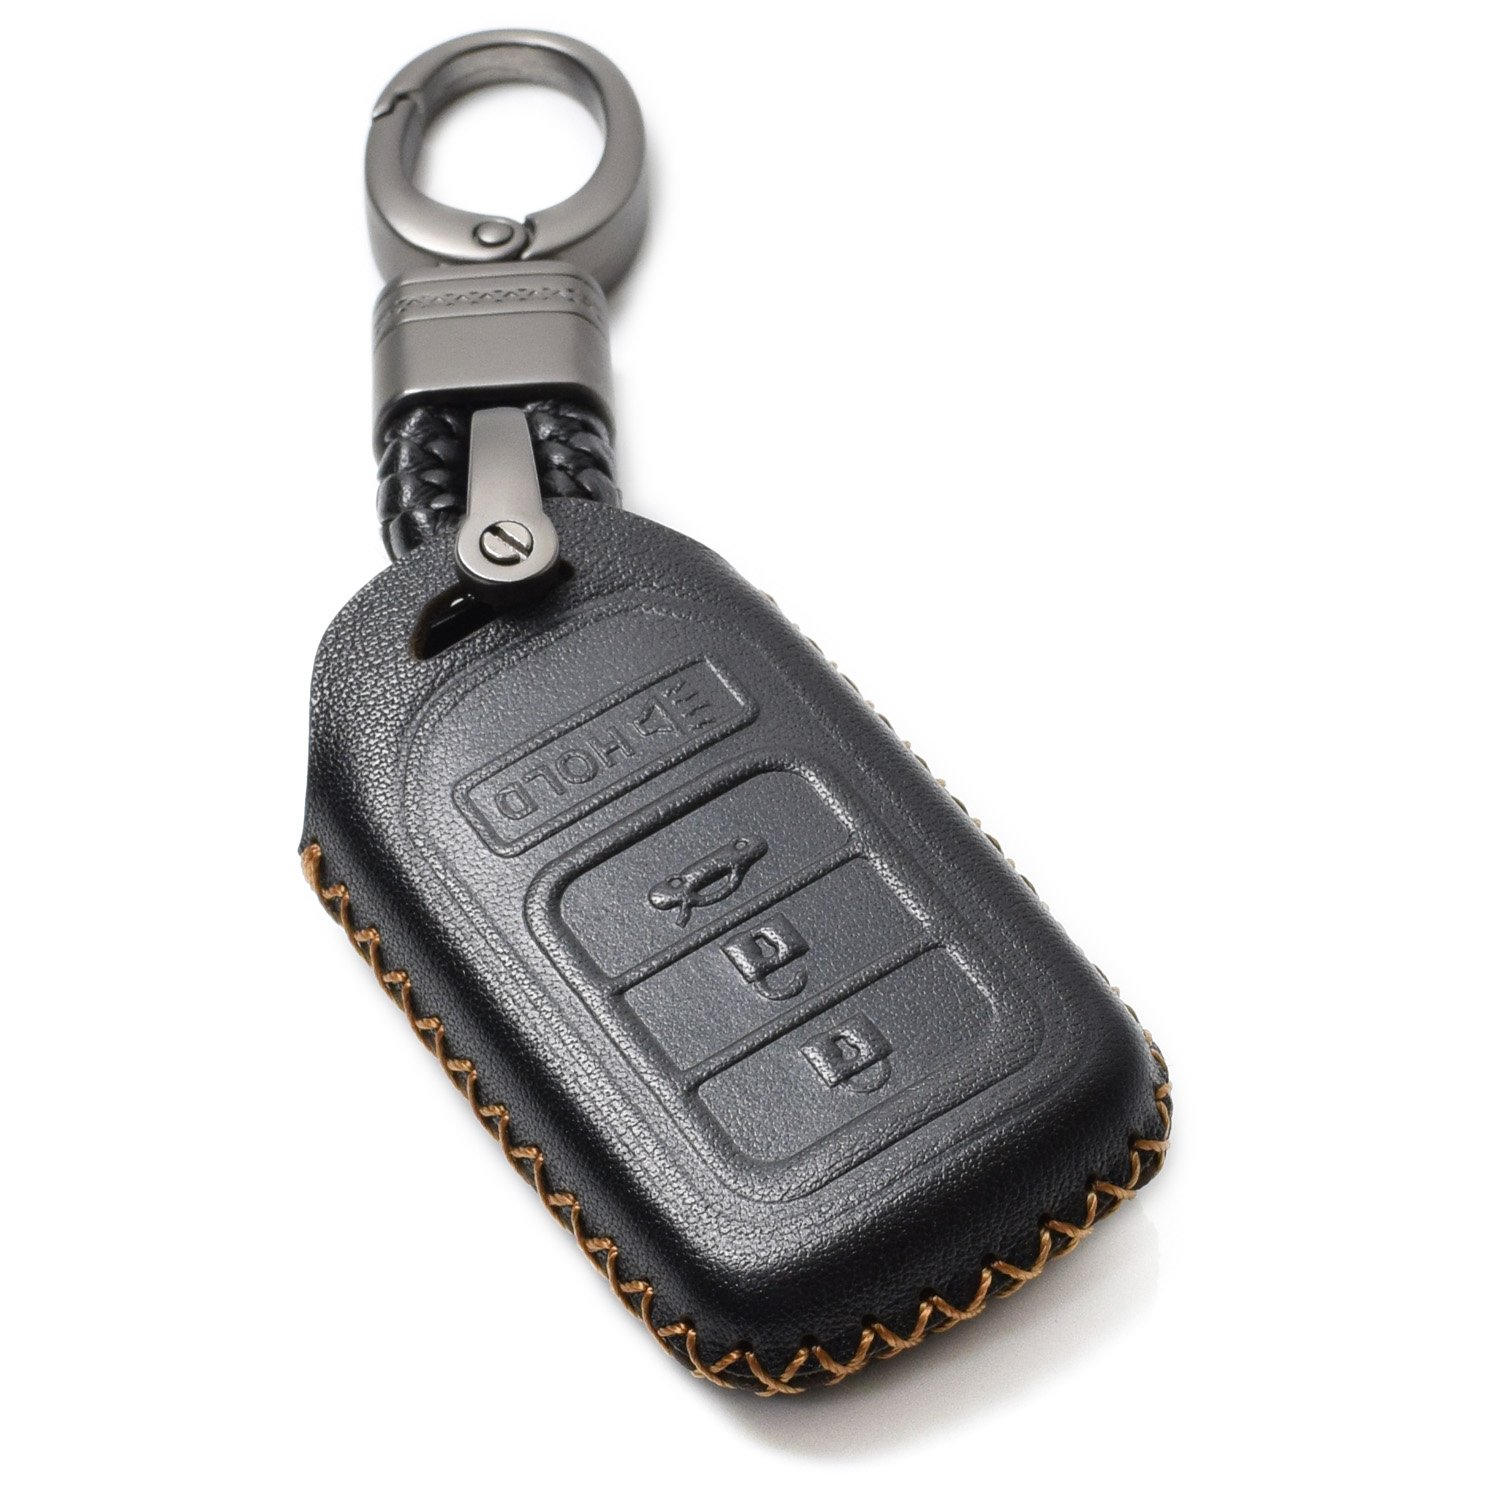 Vitodeco Genuine Leather Smart Key Keyless Remote Entry Fob Case Cover with Key Chain for Honda Civic, Fit, Accord, Pilot, CR-V (4 Buttons, Black) Vitodeco Inc